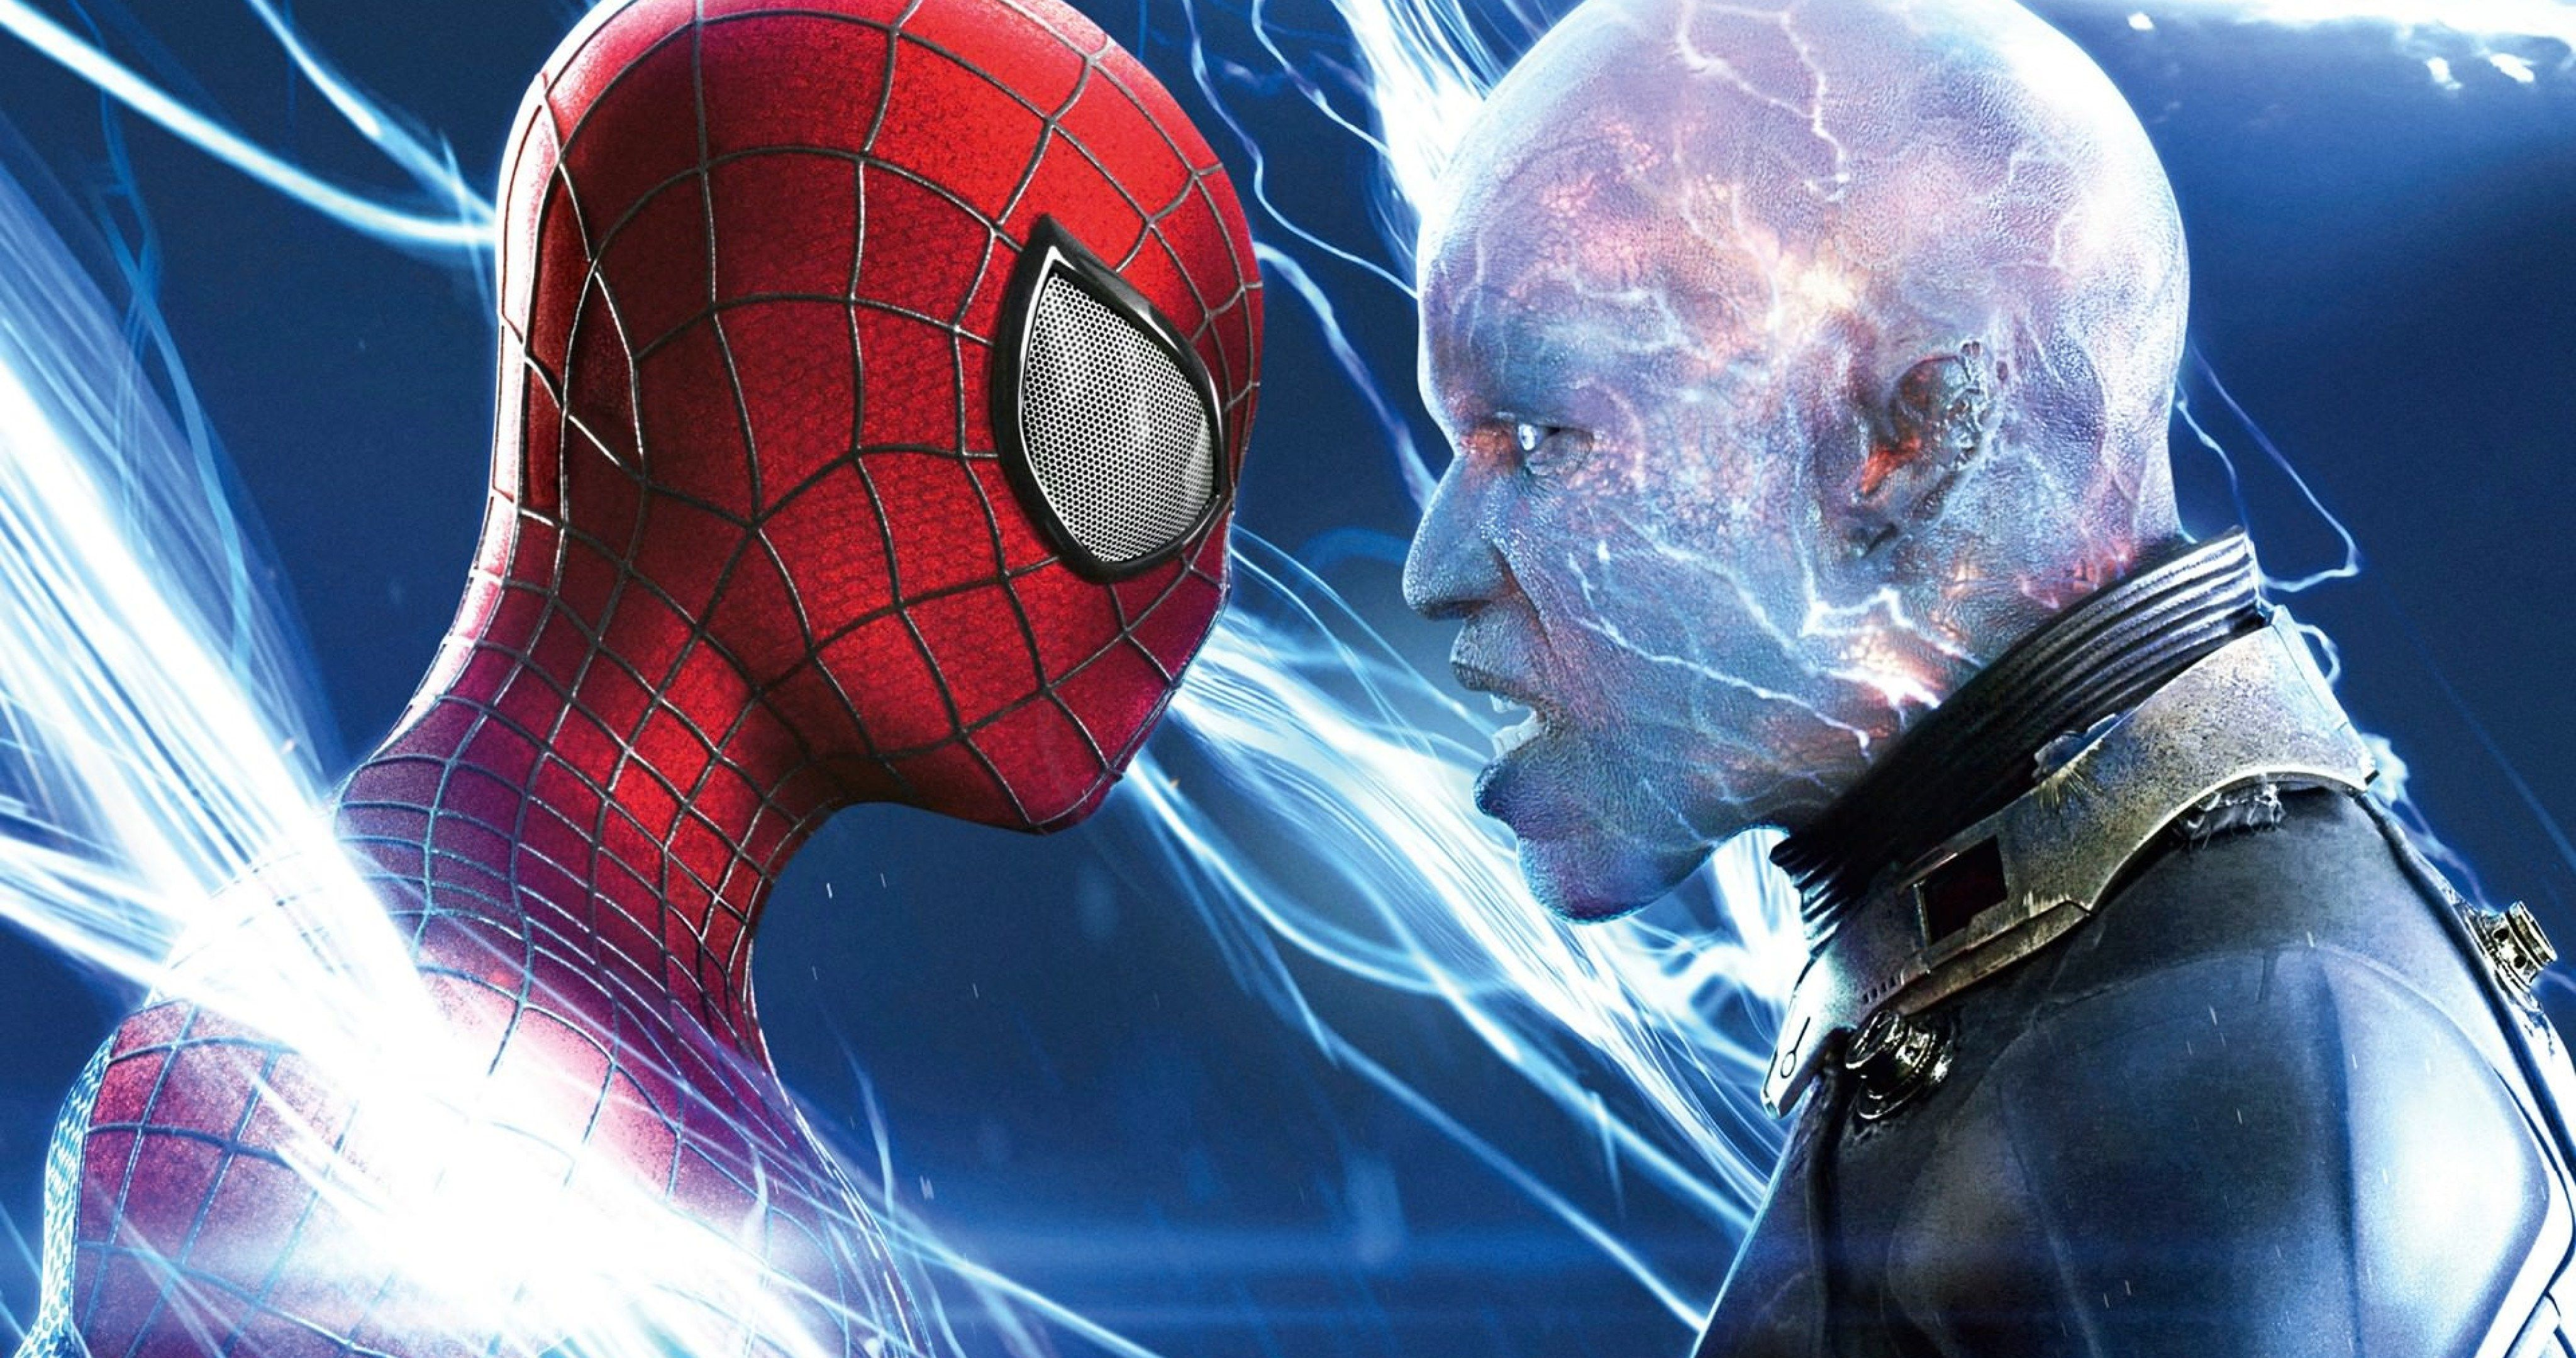 The Amazing Spider Man 2 Wallpaper Hd 4k Ultra Hd Wallpaper Spiderman Spider Man 2 Dual Monitor Wallpaper